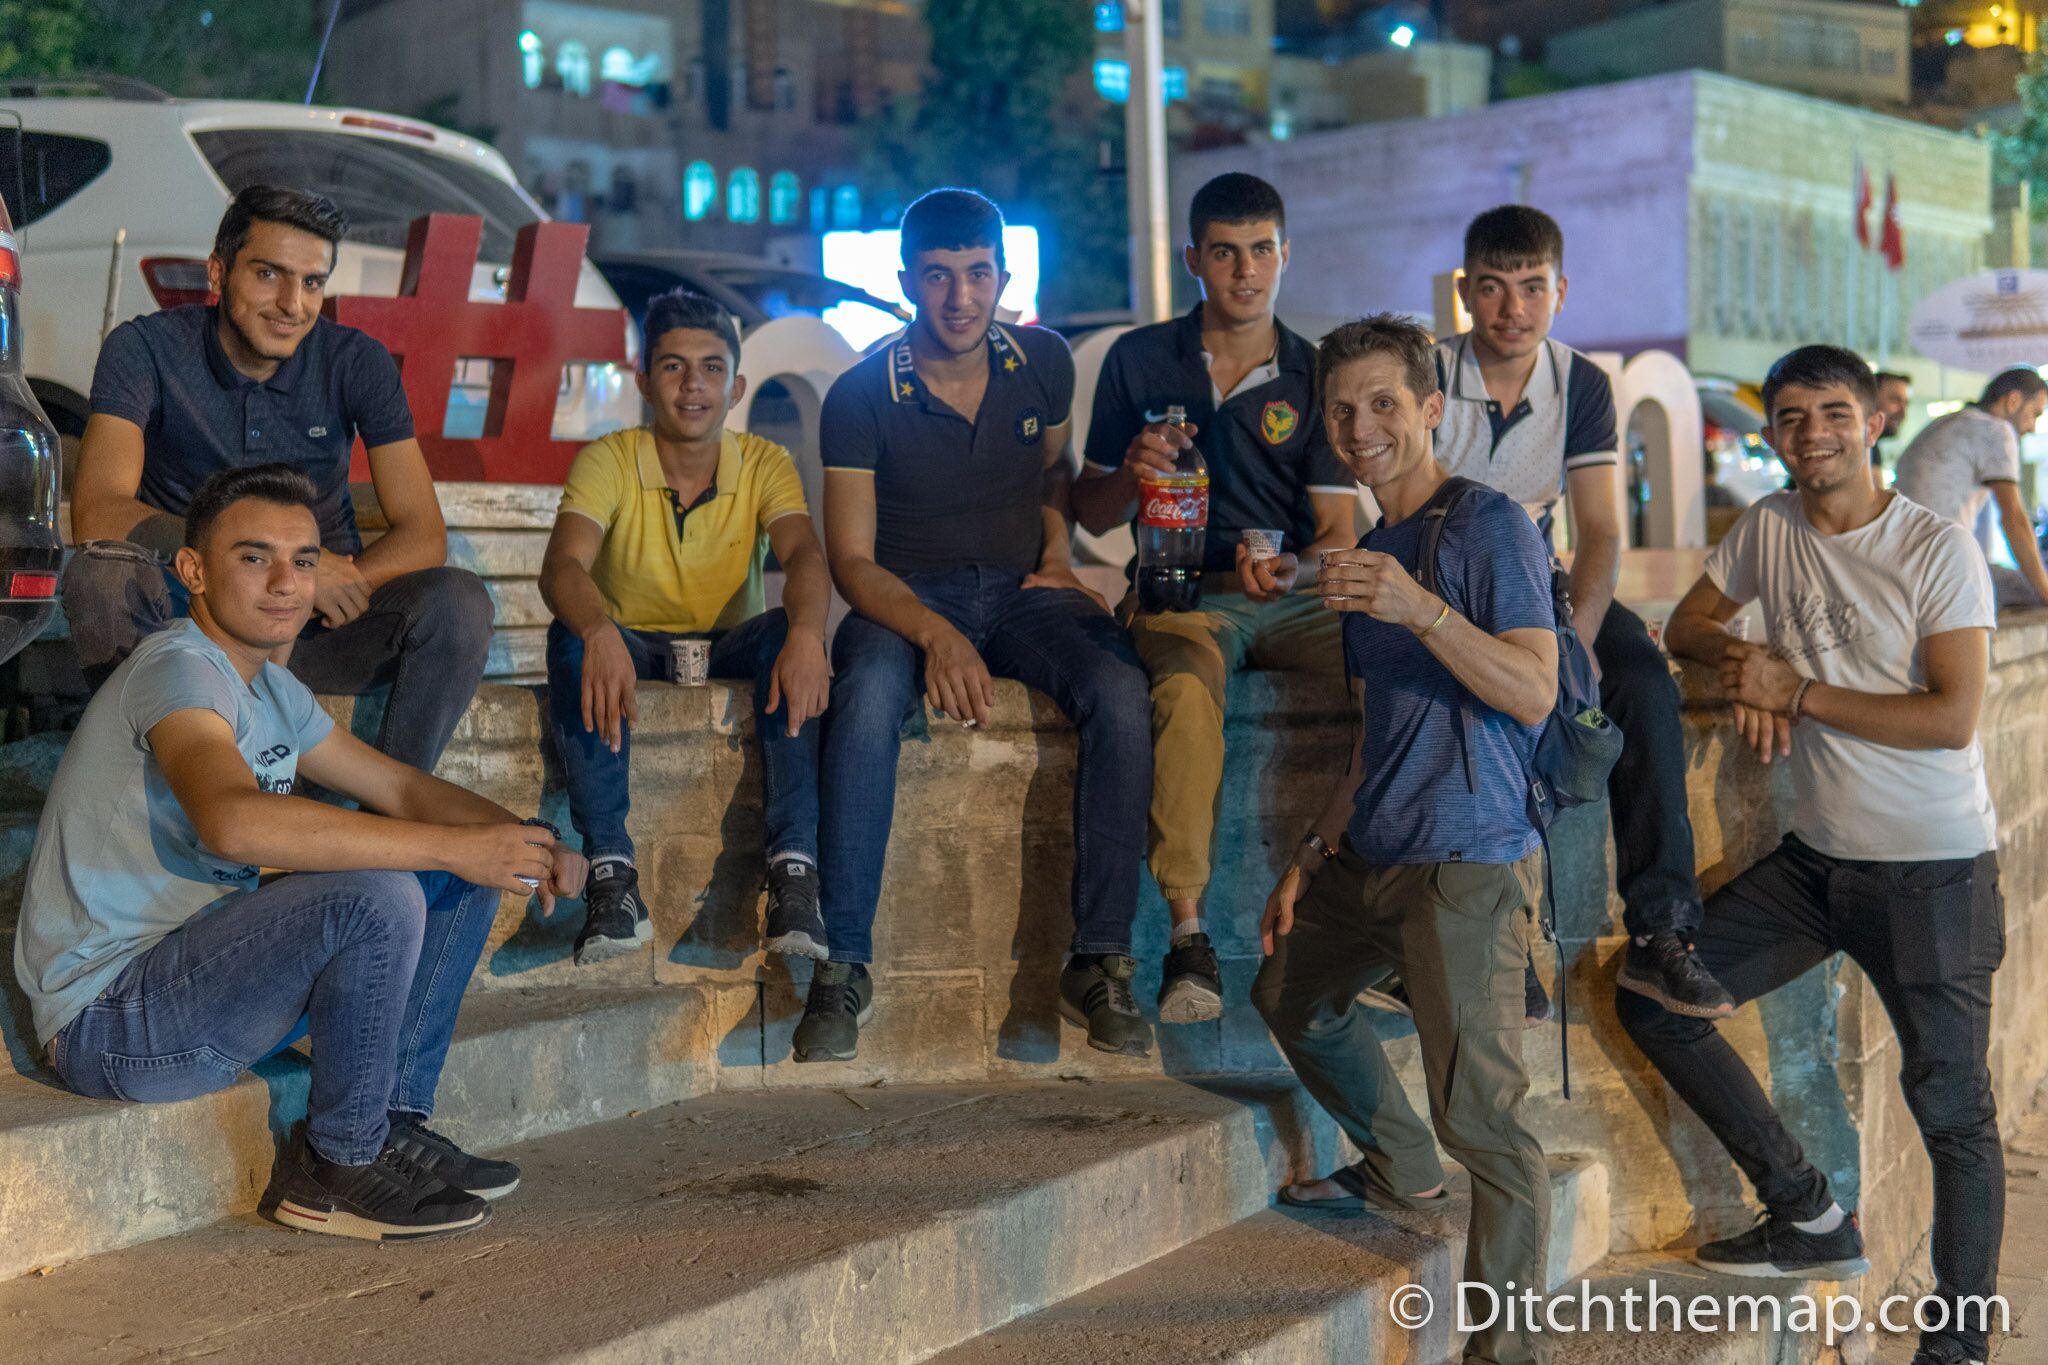 Group of teenage boys share their soda with us and ask for a photo